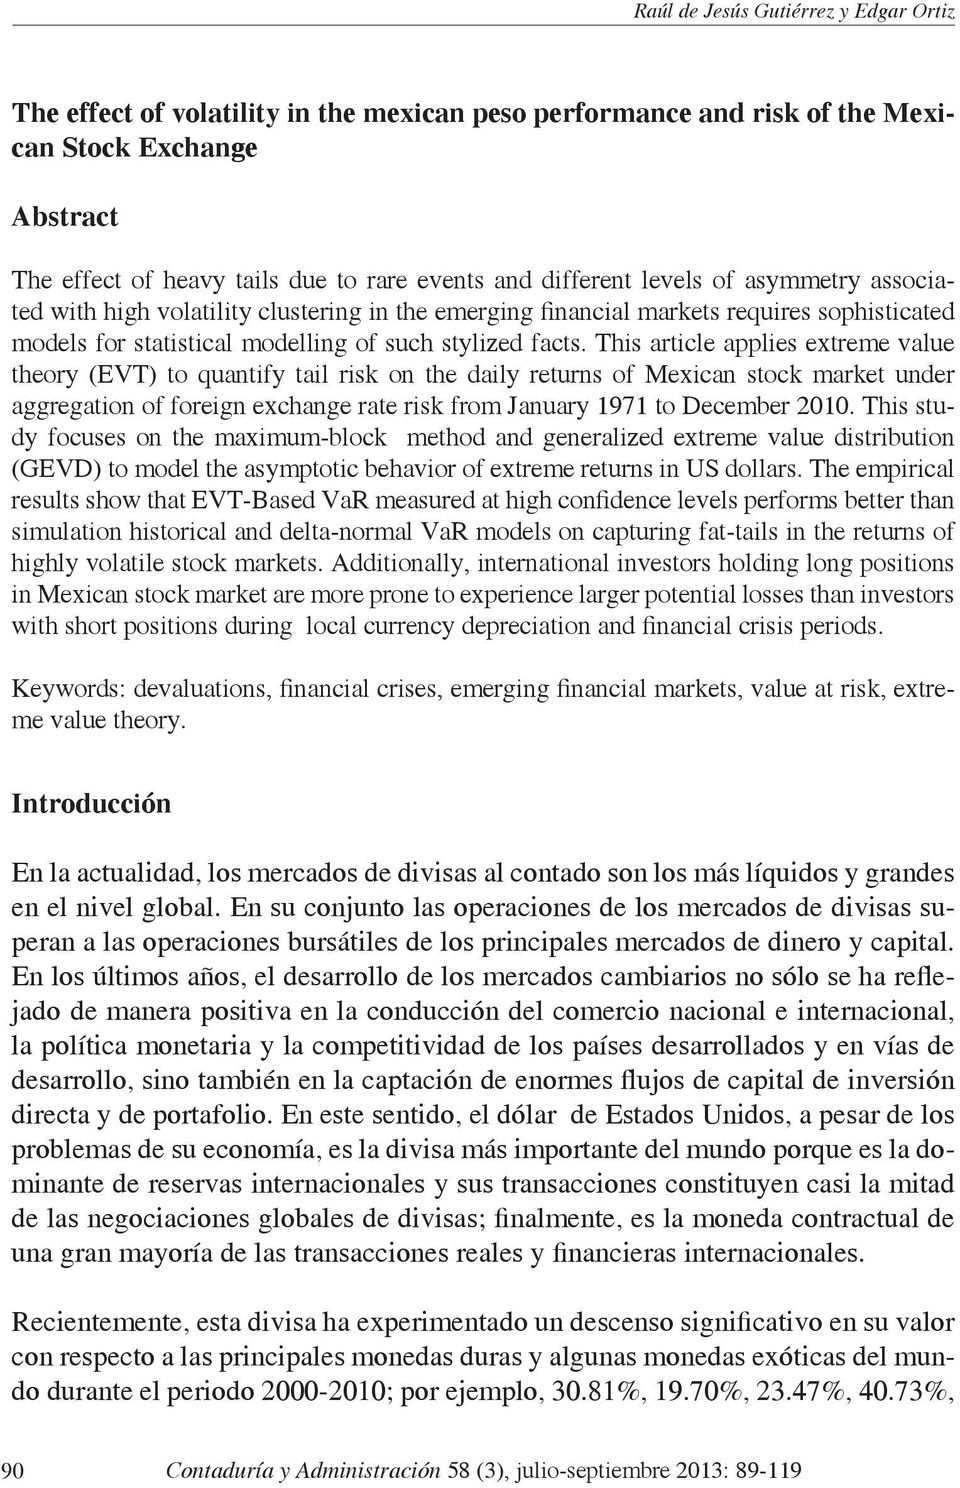 This article applies extreme value theory (EVT) to quantify tail risk on the daily returns of Mexican stock market under aggregation of foreign exchange rate risk from January 1971 to December 2010.